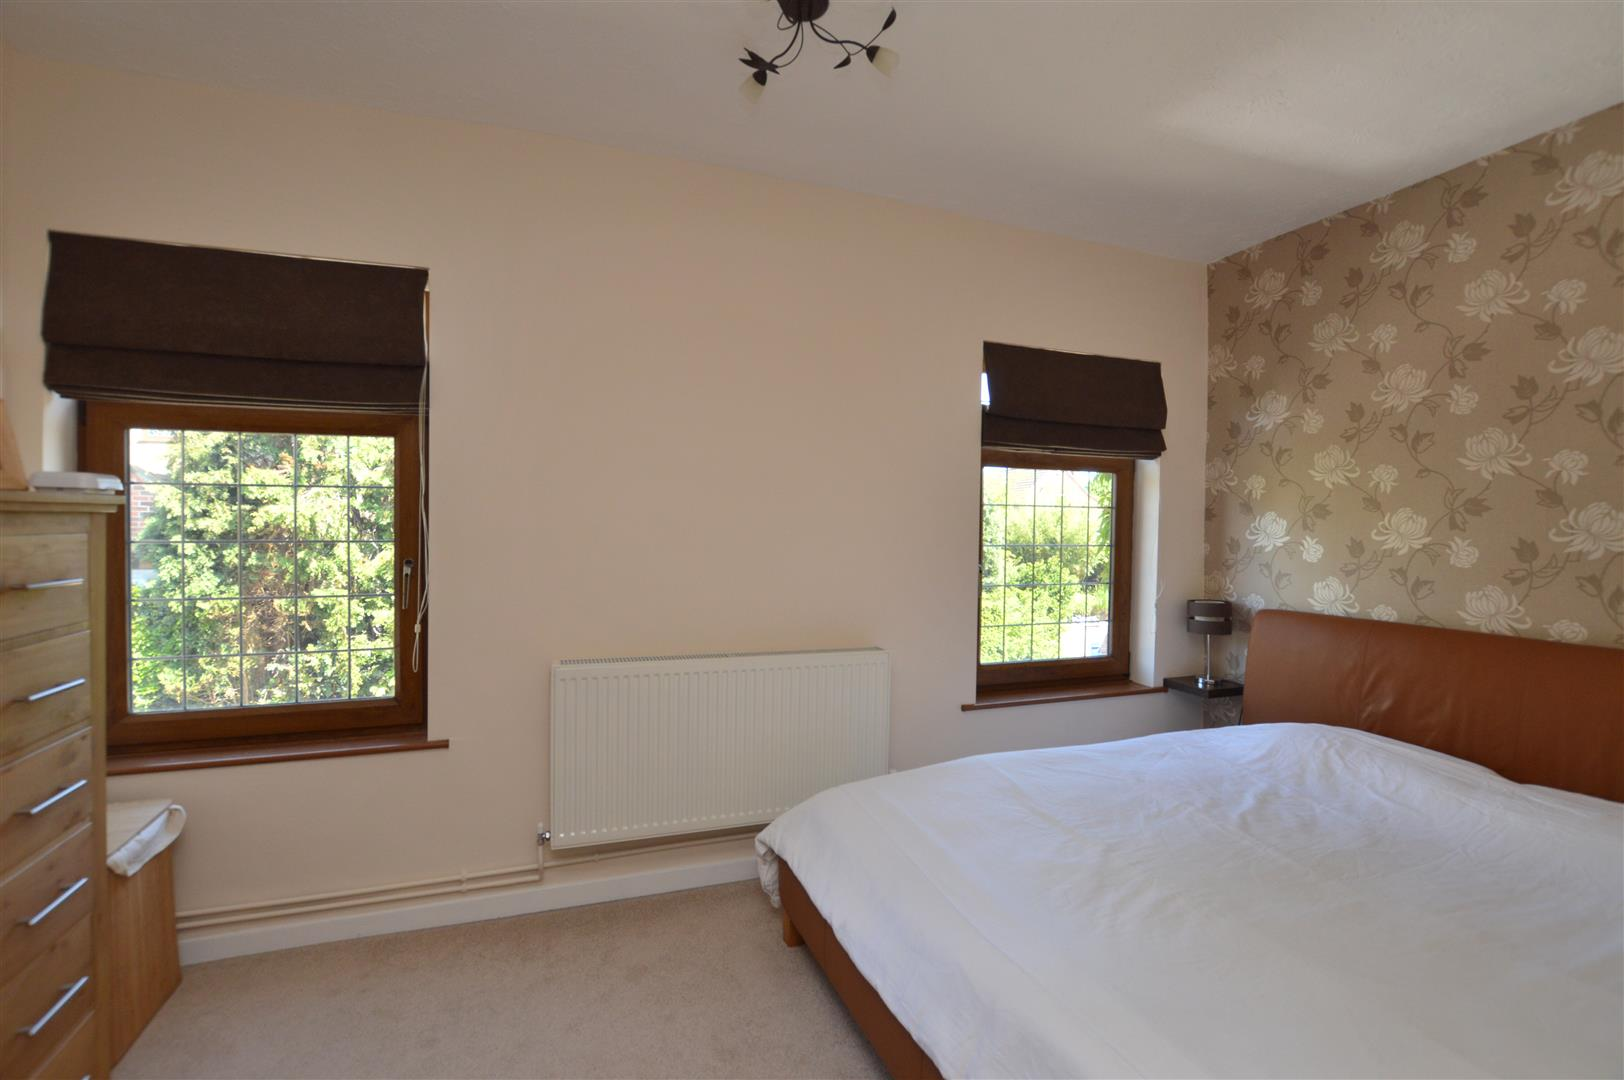 2 Bedroom Terraced House For Sale In Belper